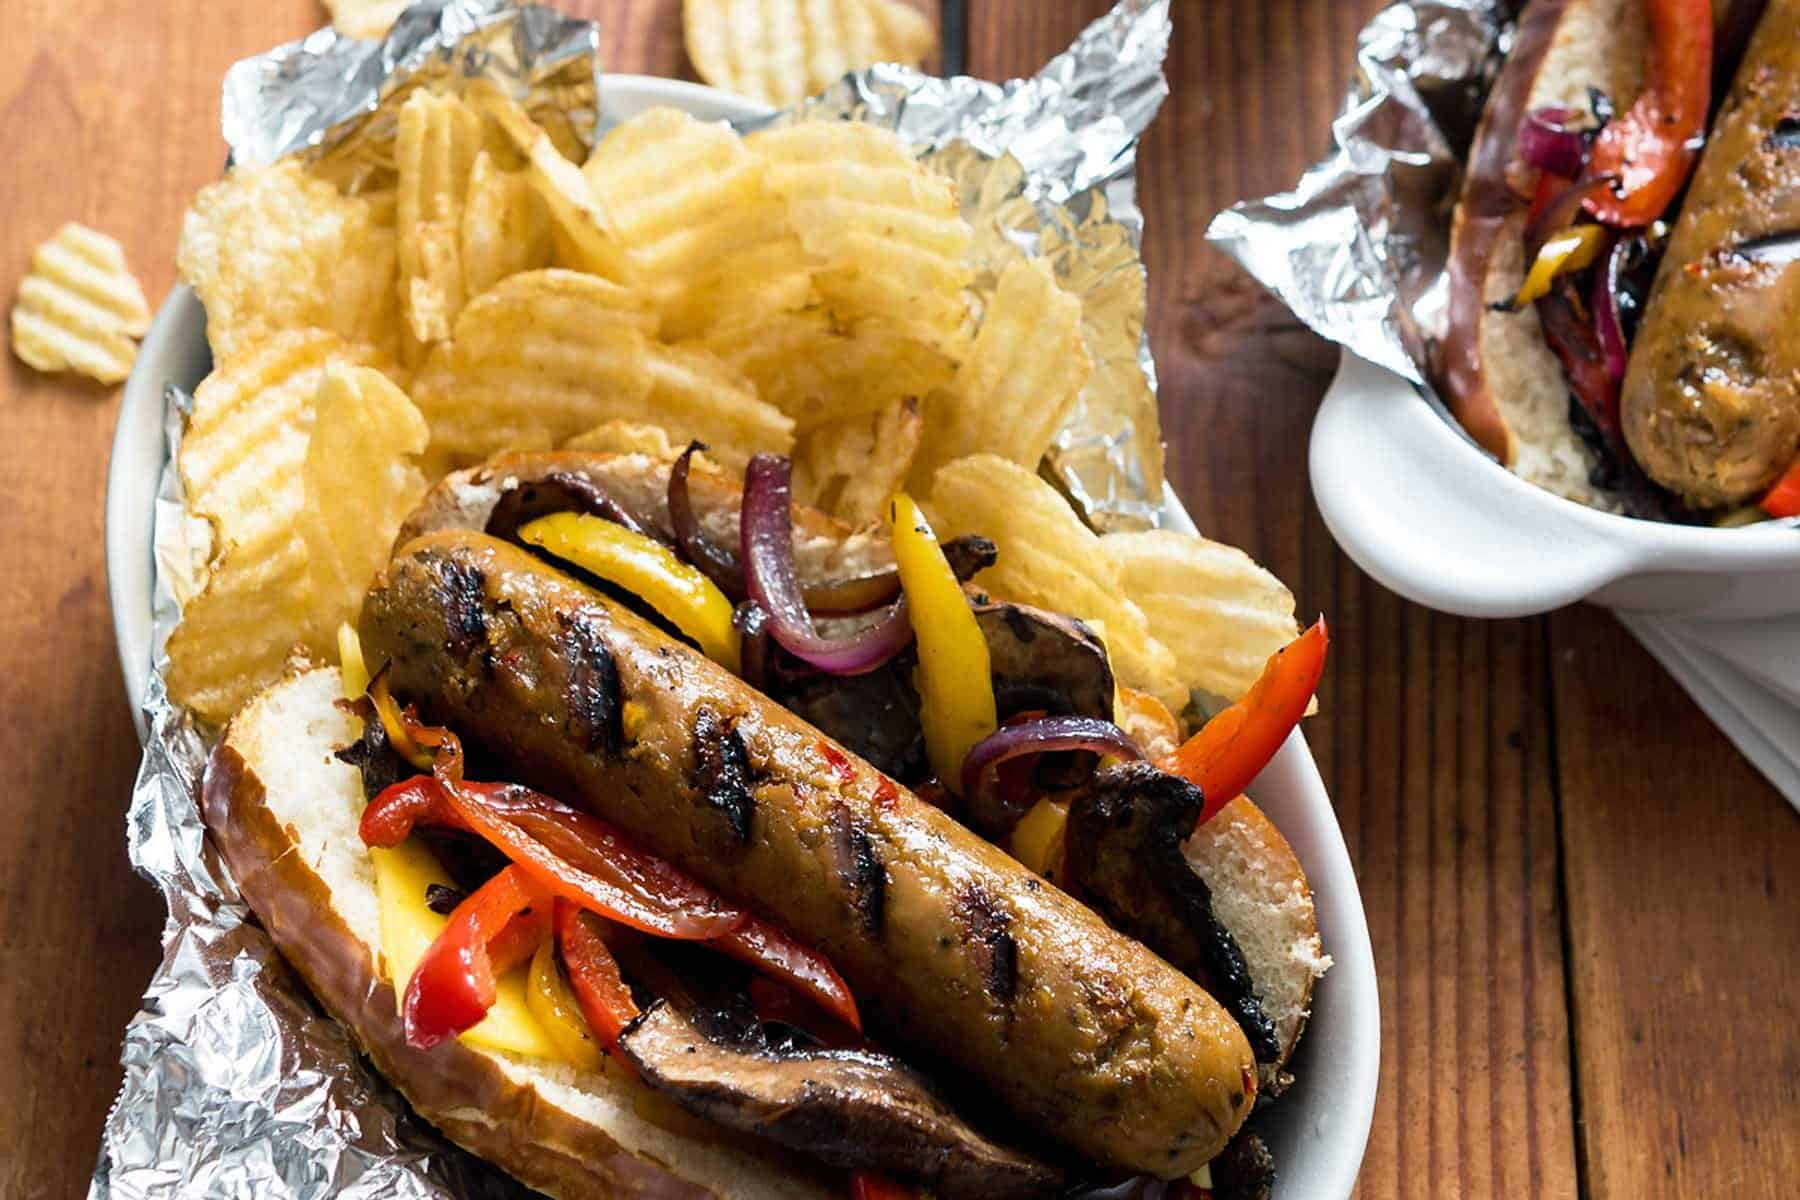 Summer might be over, but it doesn't mean that you can't keep grillin'! Tailgating season has just begun and these Grilled Plant-Based Beer Sausages are the perfect thing for it.